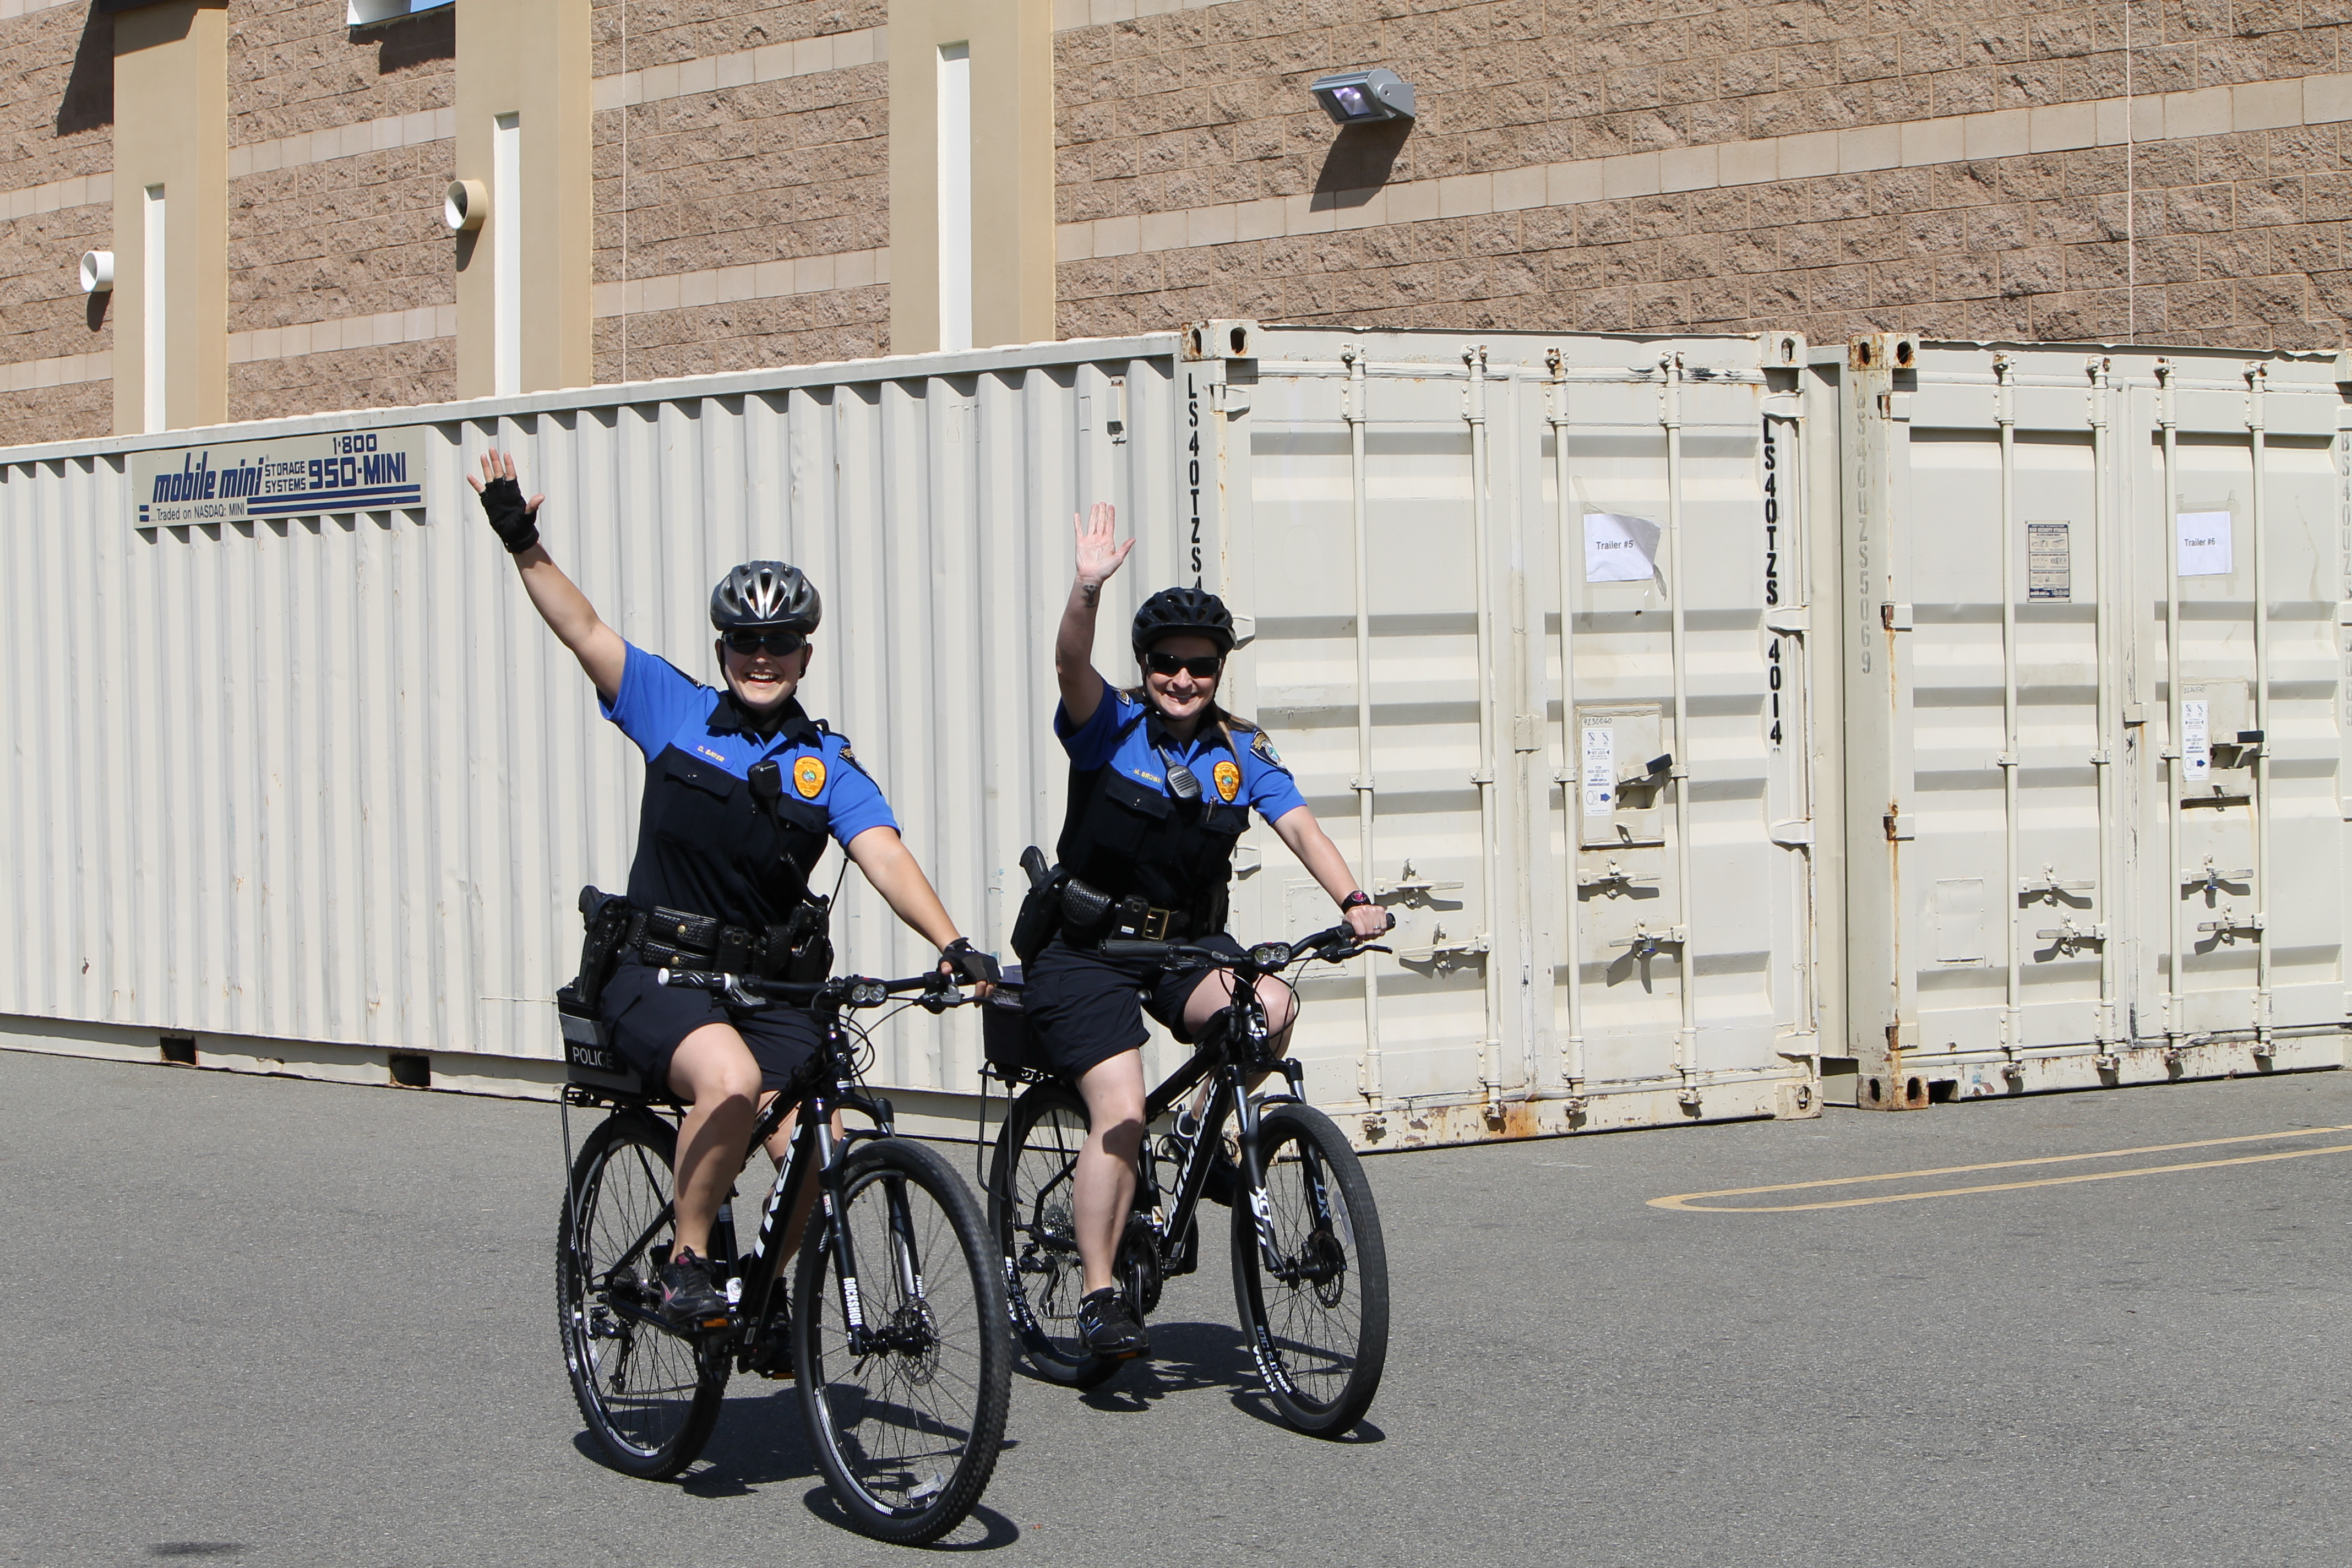 PD bicycle officers